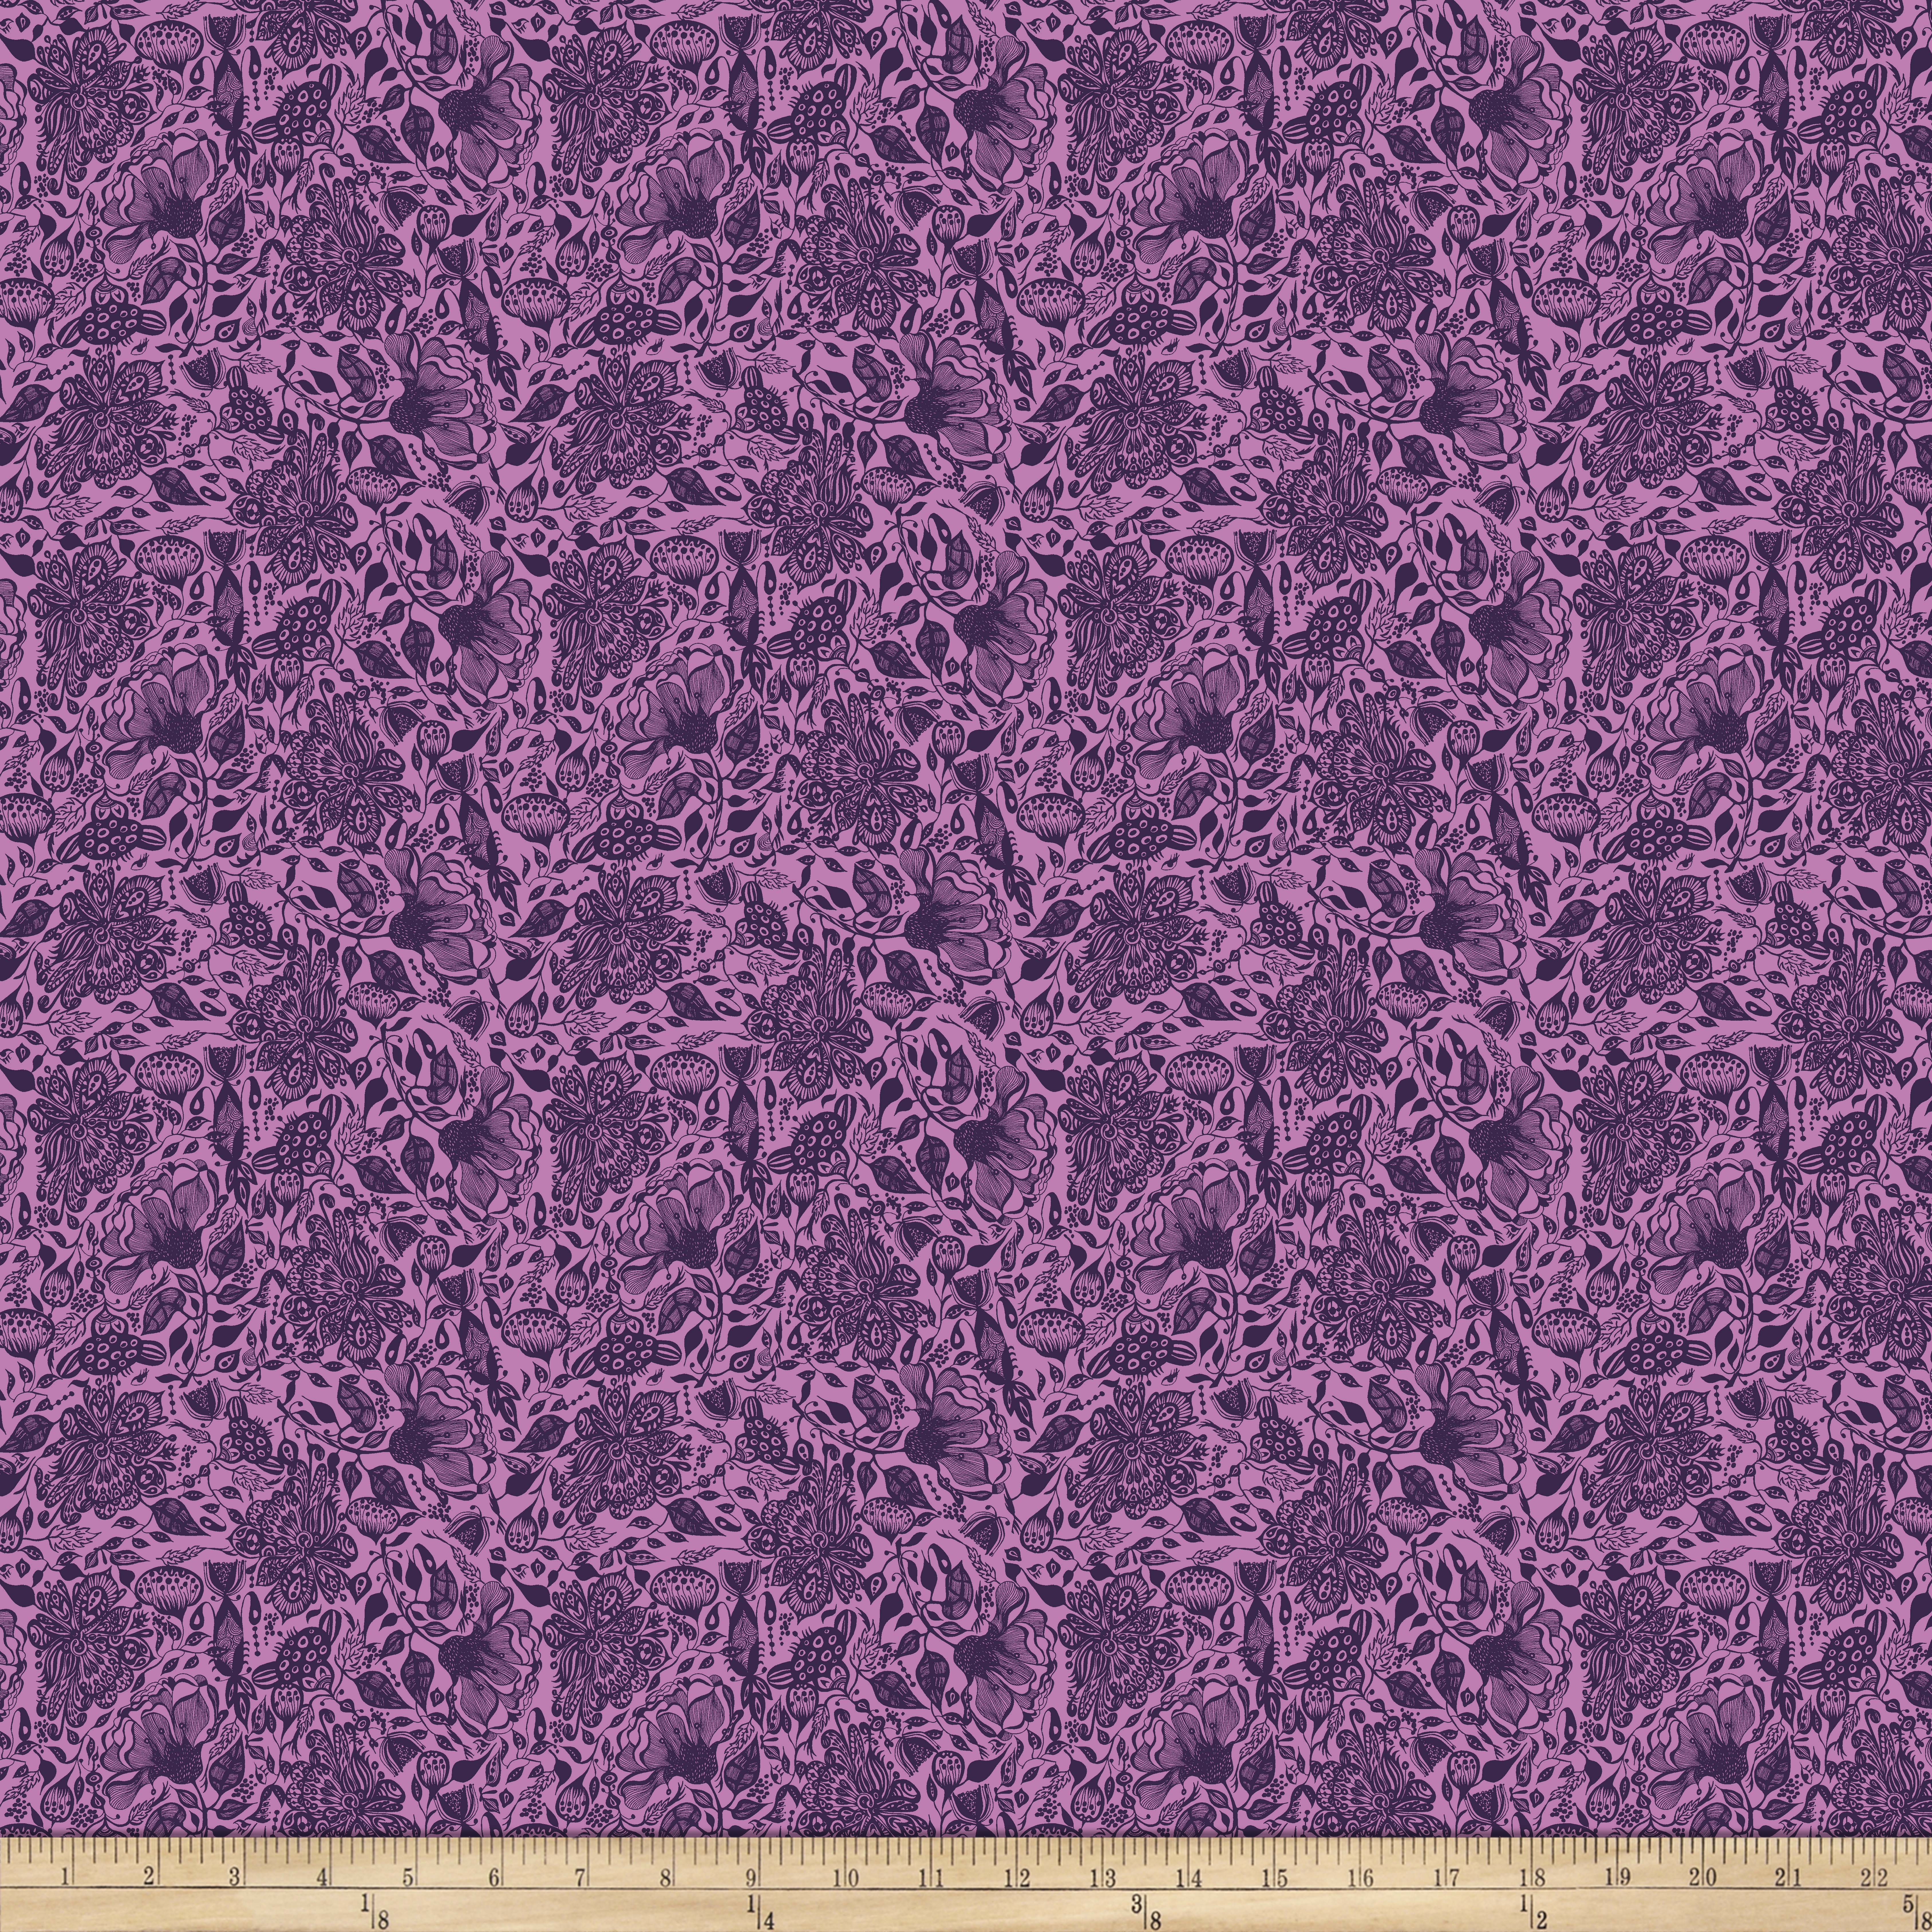 INOpets.com Anything for Pets Parents & Their Pets Garden Dreams Dream Lavender Fabric